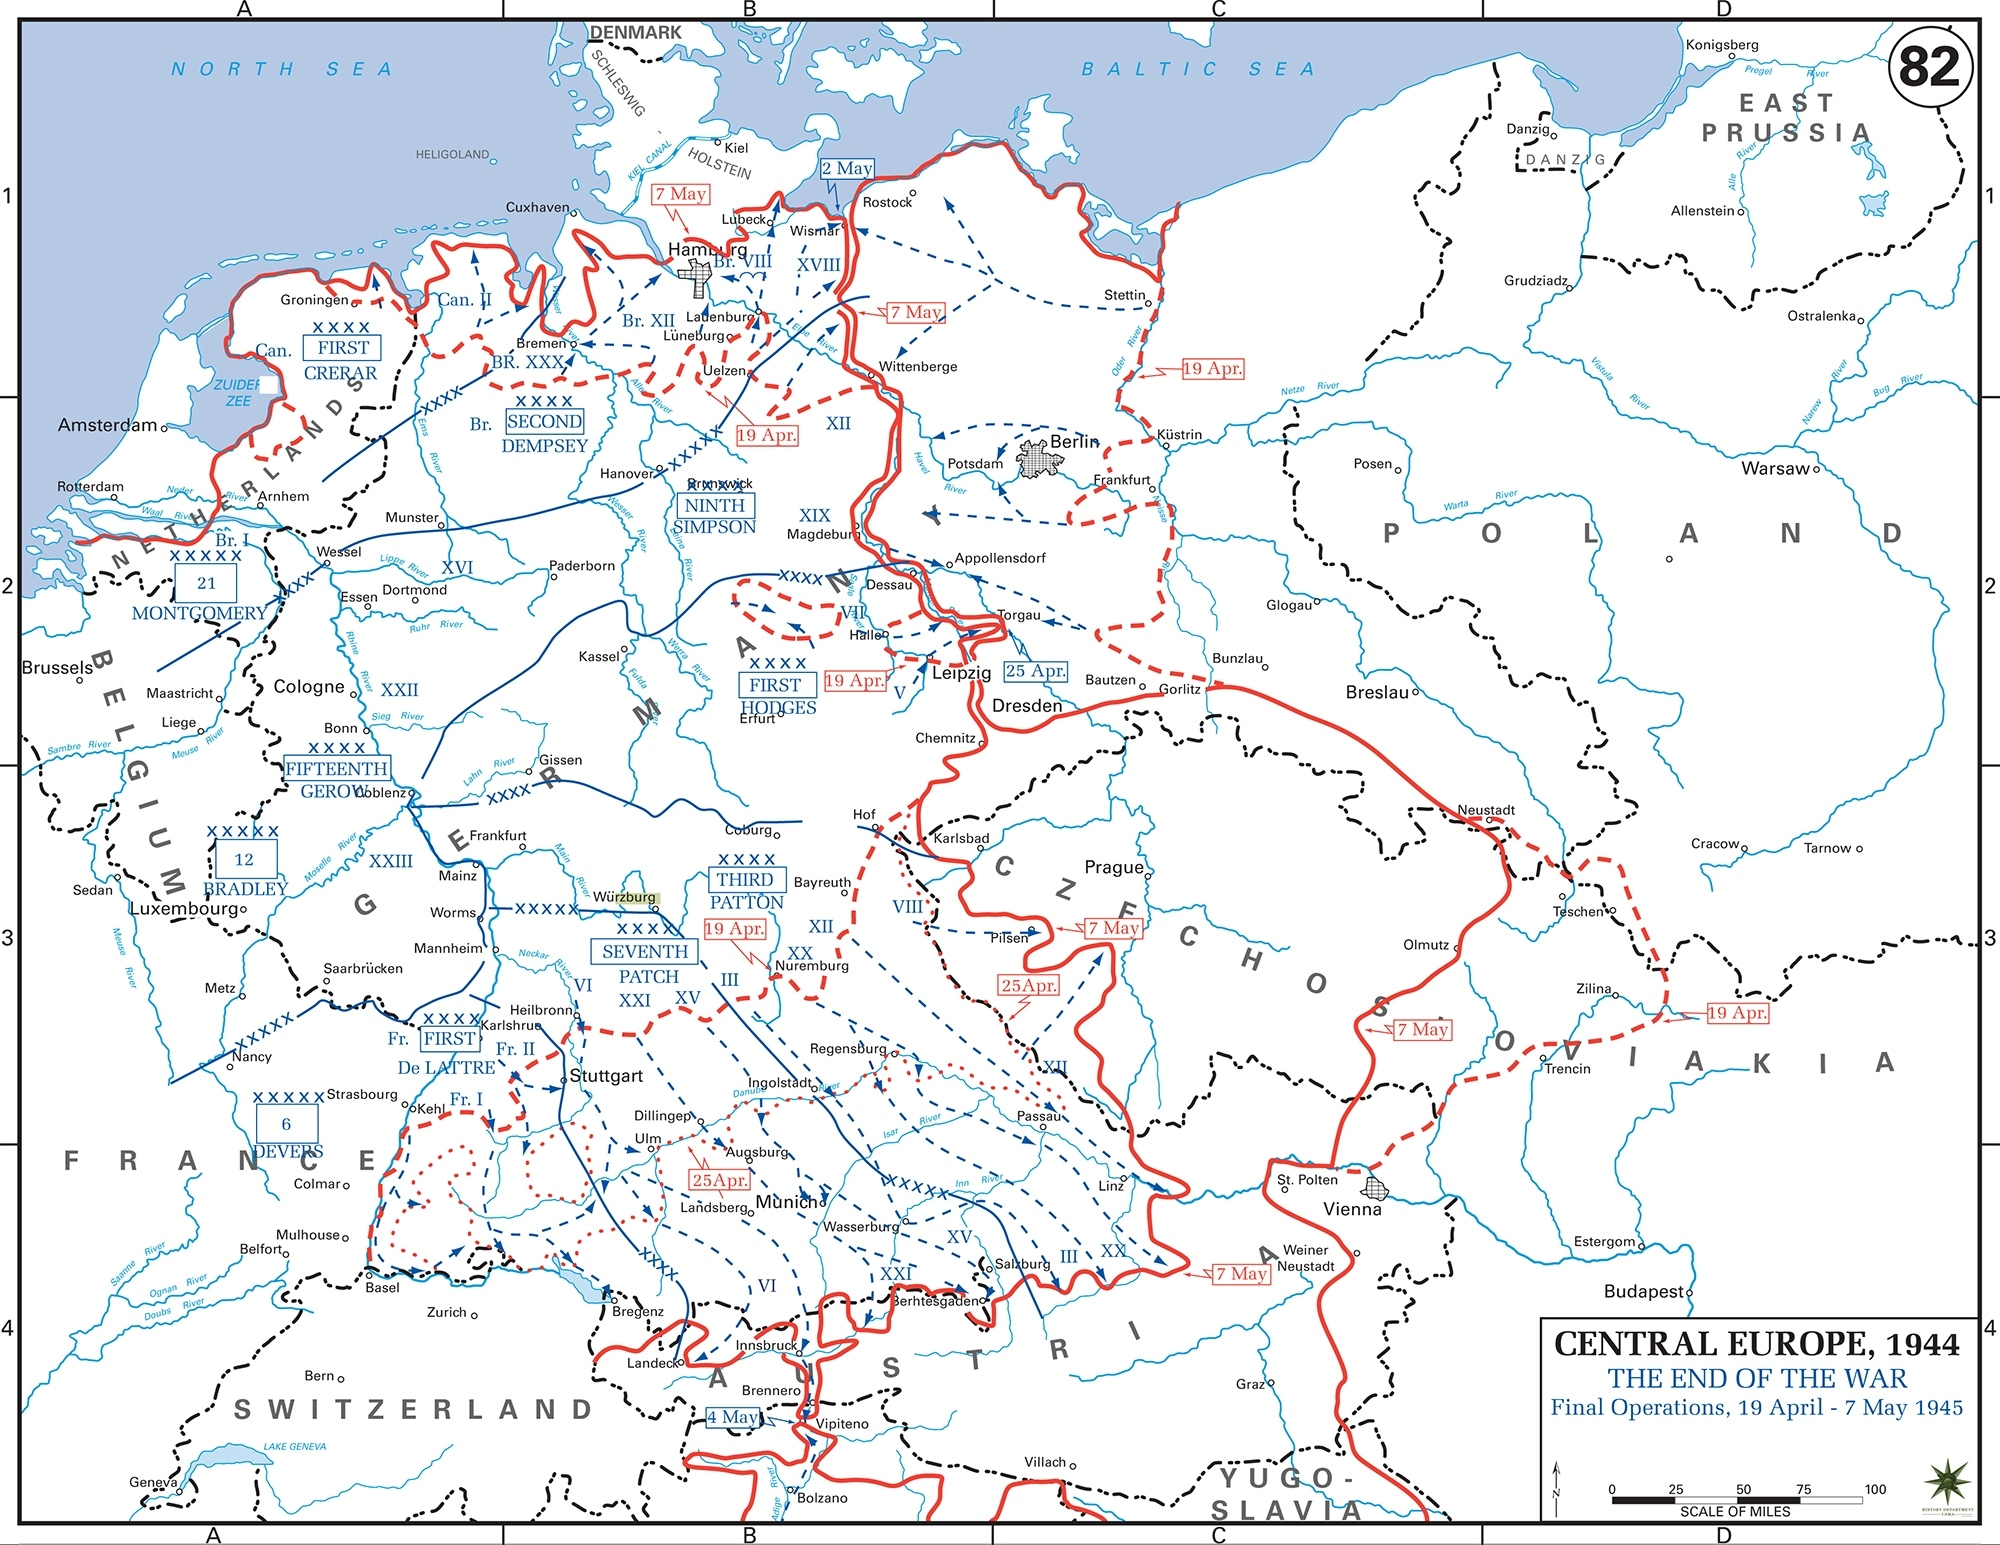 Map Of Wwii: Germany May 1945 regarding Map Of Germany After World War Ii